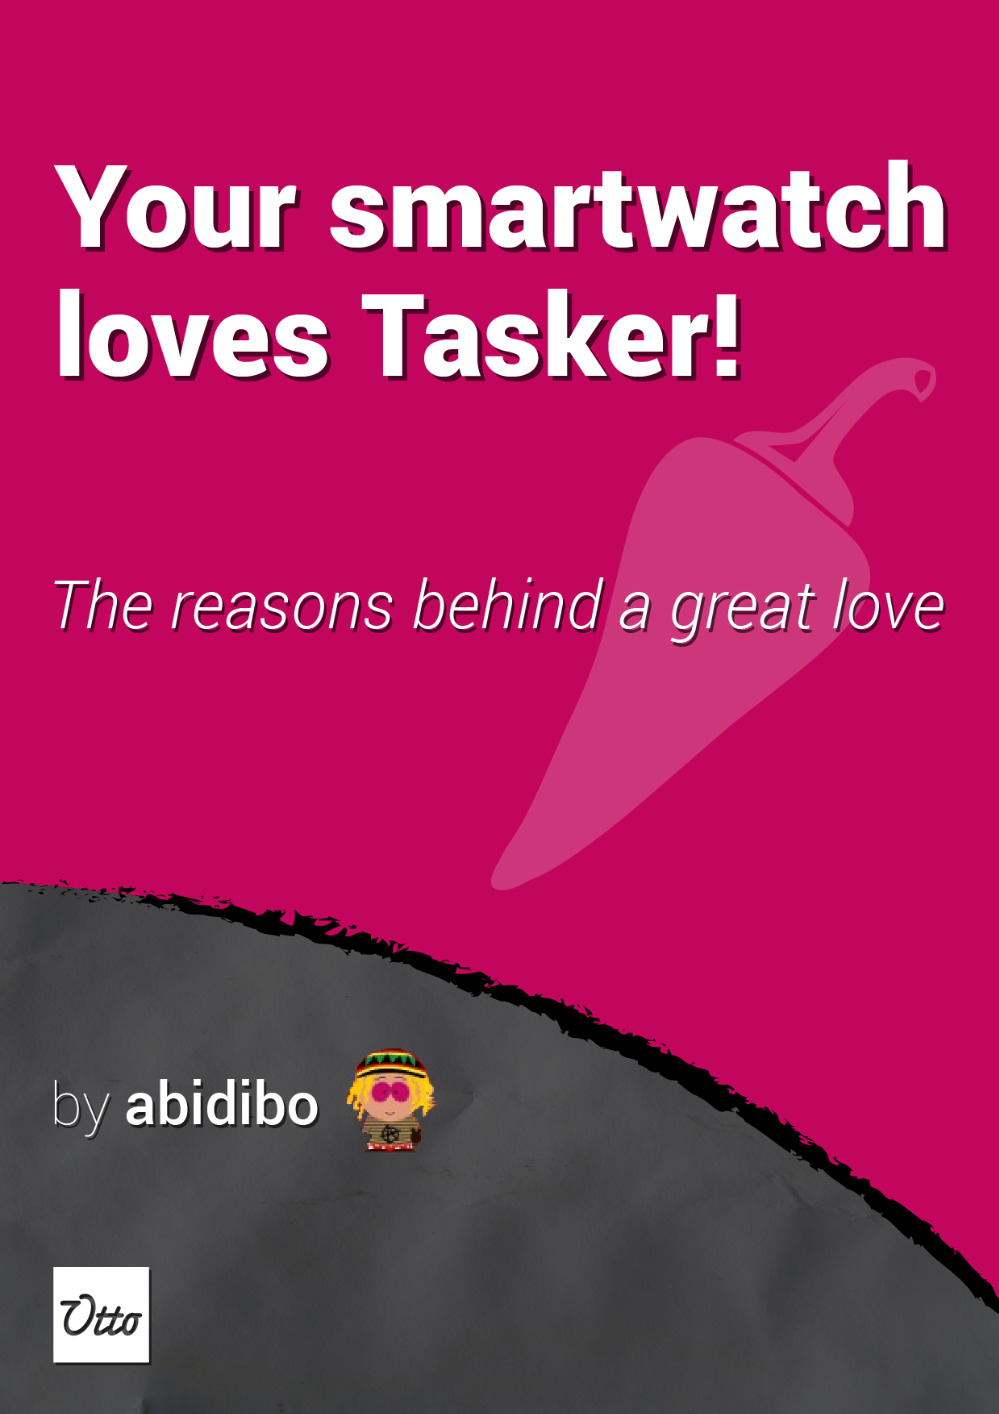 Your Smartwatch Loves Tasker!